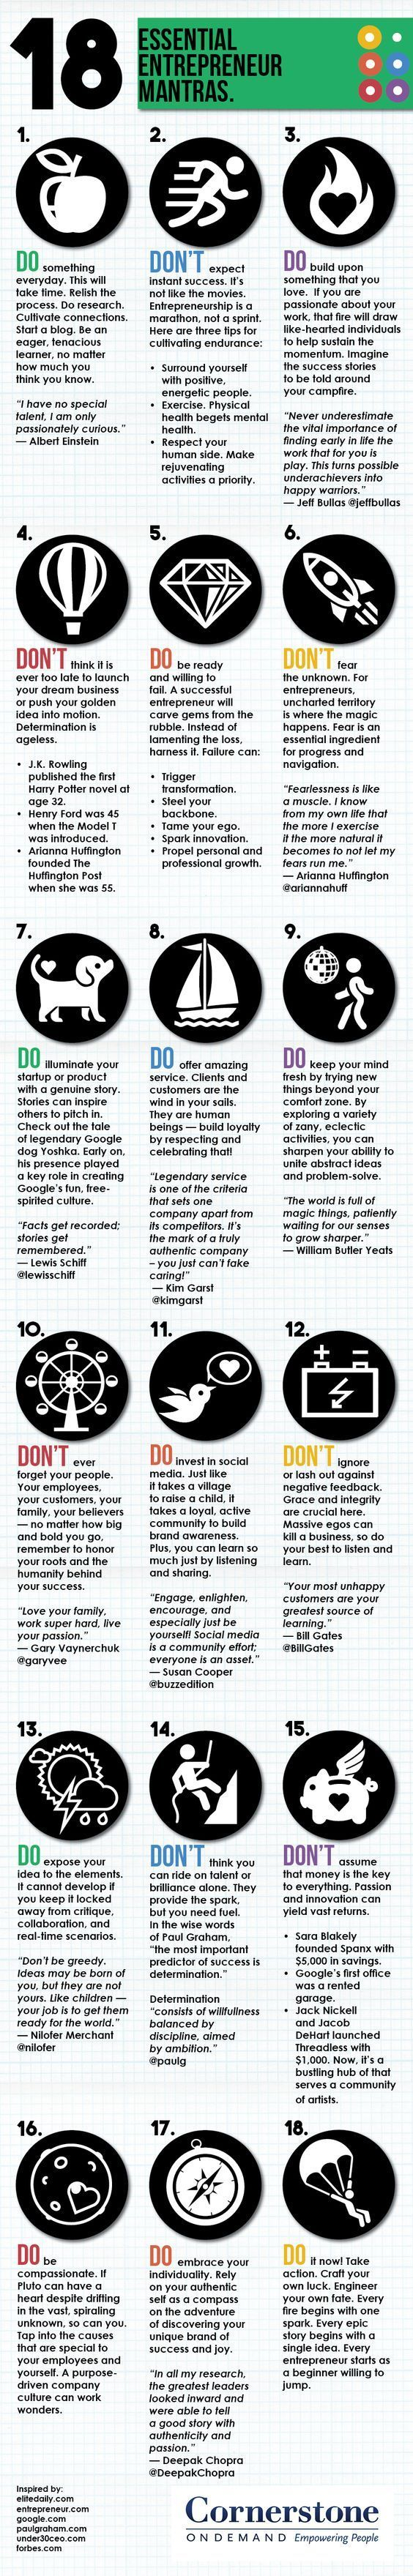 Perfect 18 Essential Entrepreneur Mantras #infographic